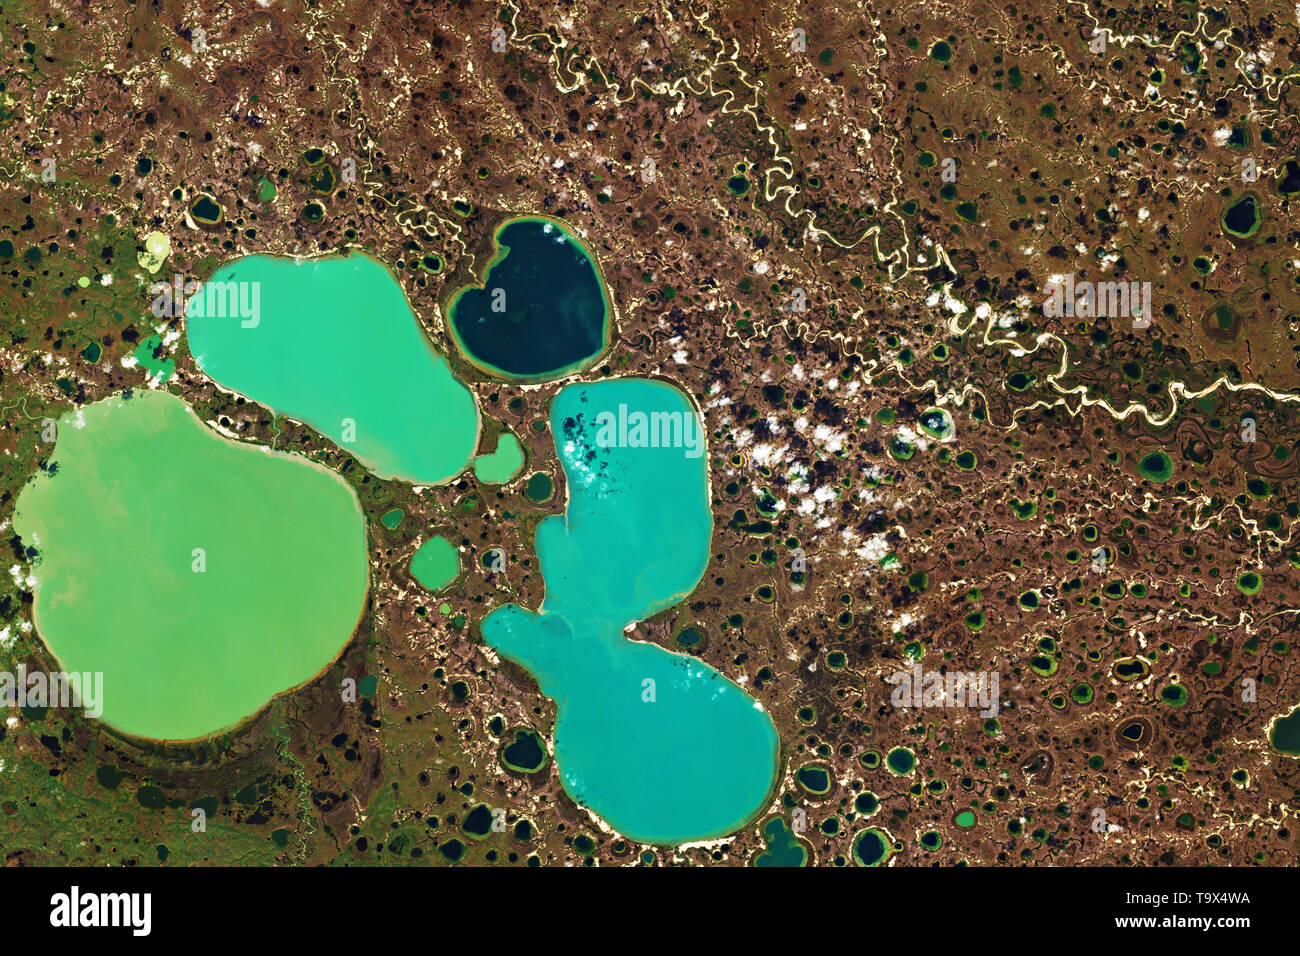 Ponds in the Yamal Peninsula in Northwest Siberia seen from space - contains modified Copernicus Sentinel Data (2018) - Stock Image